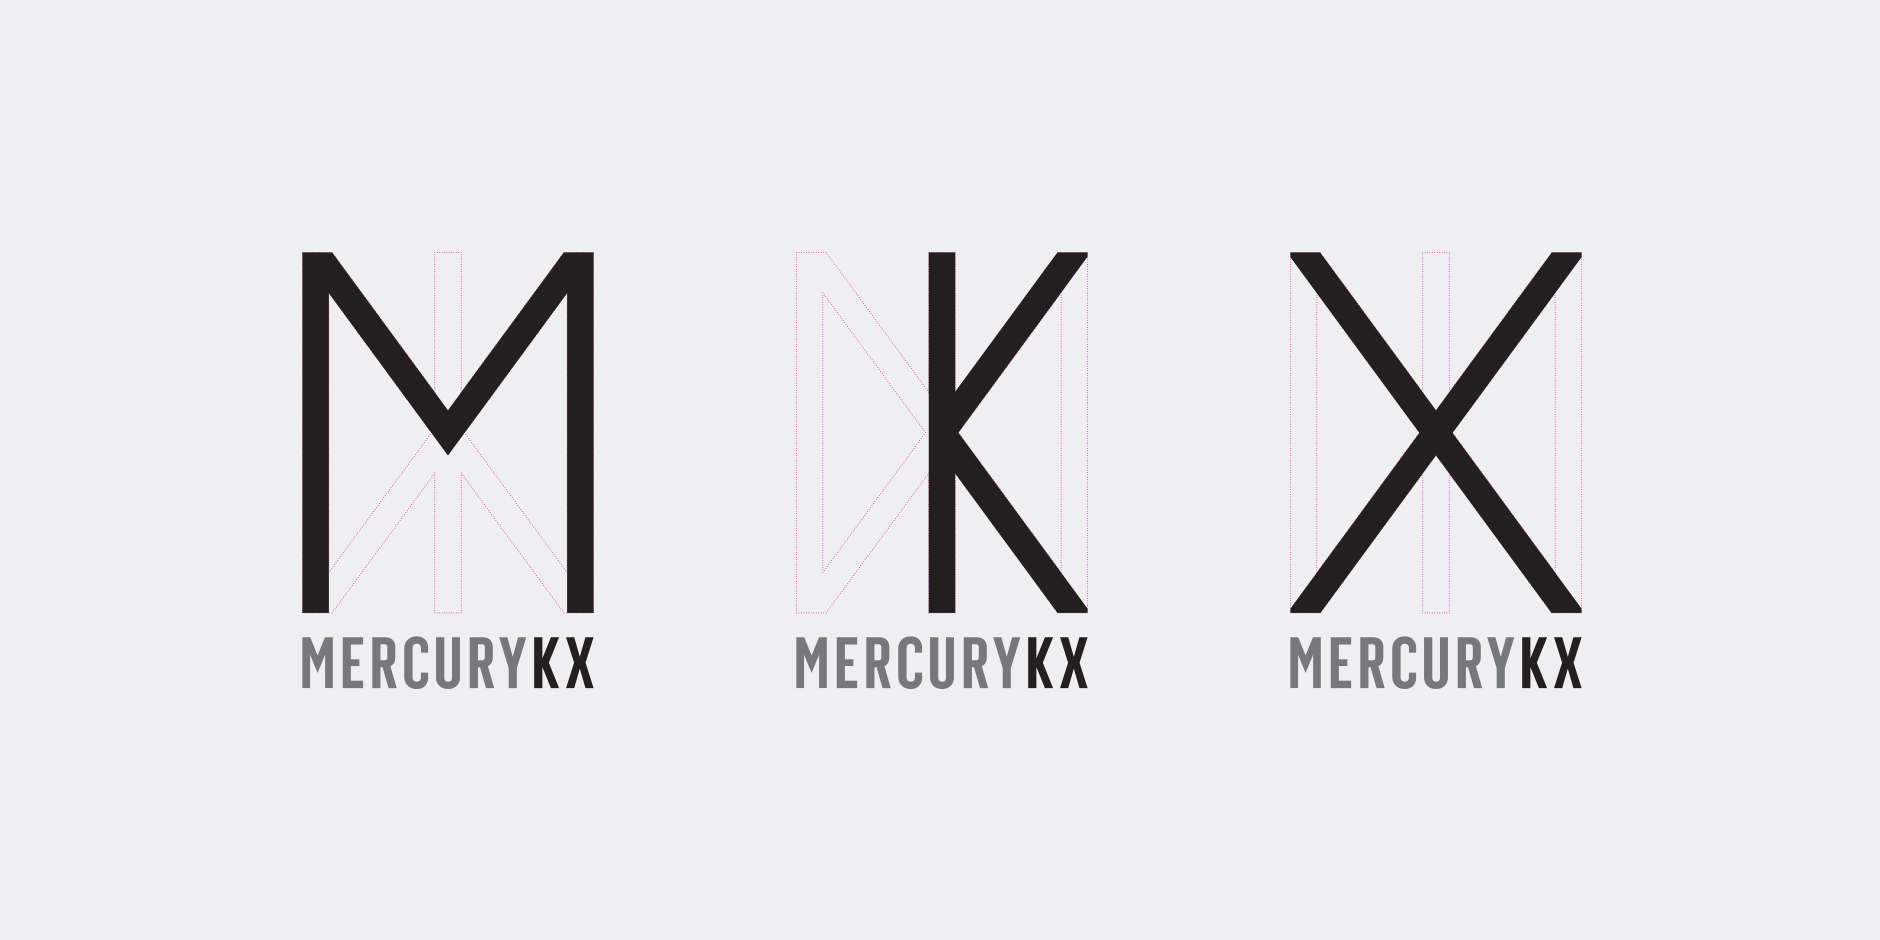 Mercury_KX_logo_construction